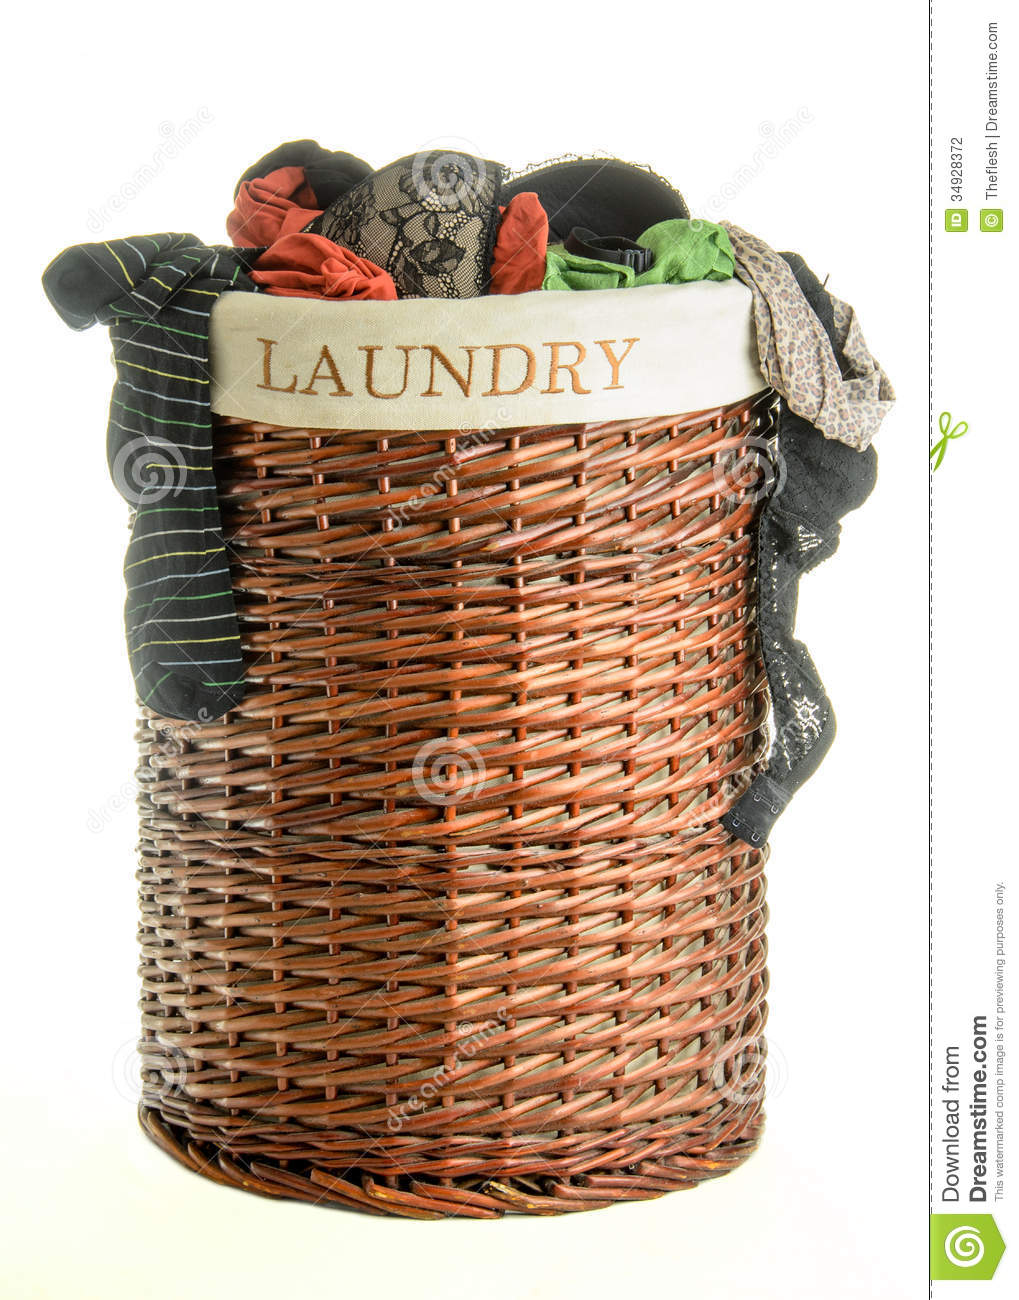 Laundry basket with clothes stock photography image 34928372 - Hamper for dirty clothes ...